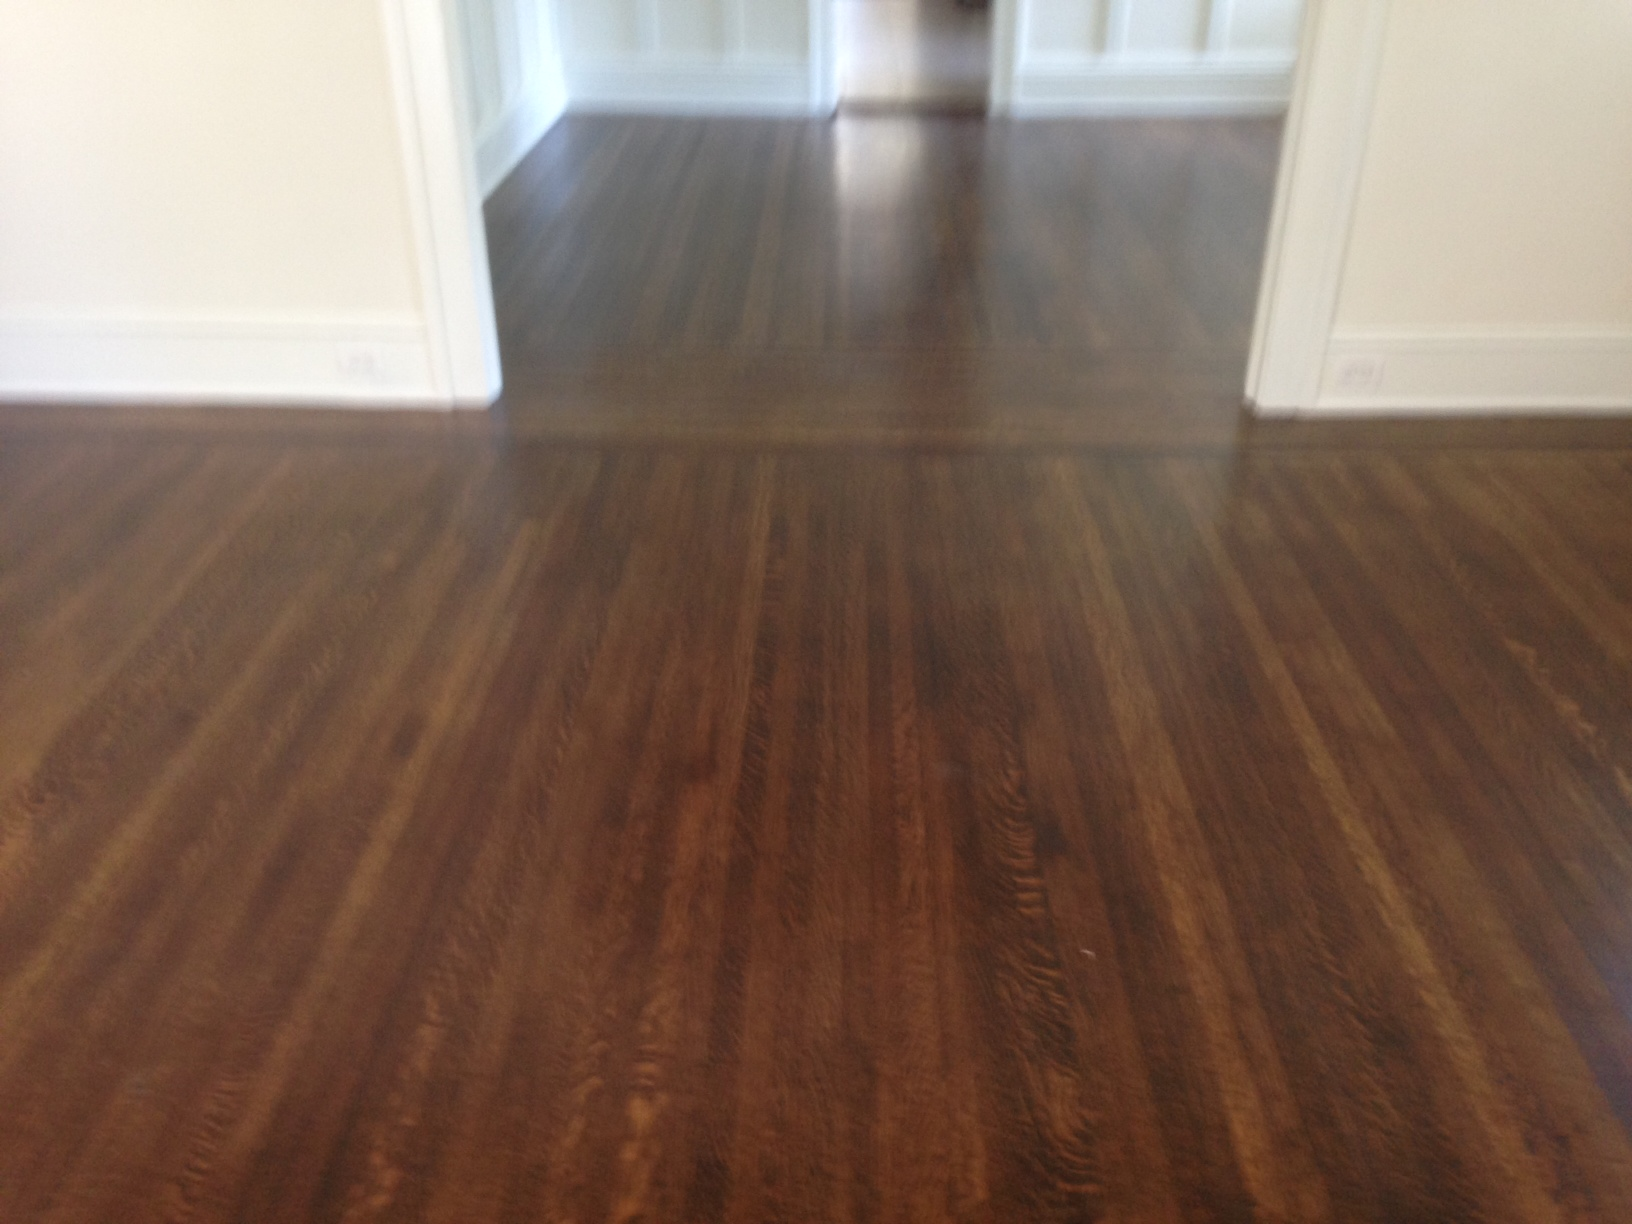 Refinishing hardwood floors without sanding 100 hardwood floors how hardwood floor refinishing cost toronto staining hardwood floors without sanding solutioingenieria Gallery